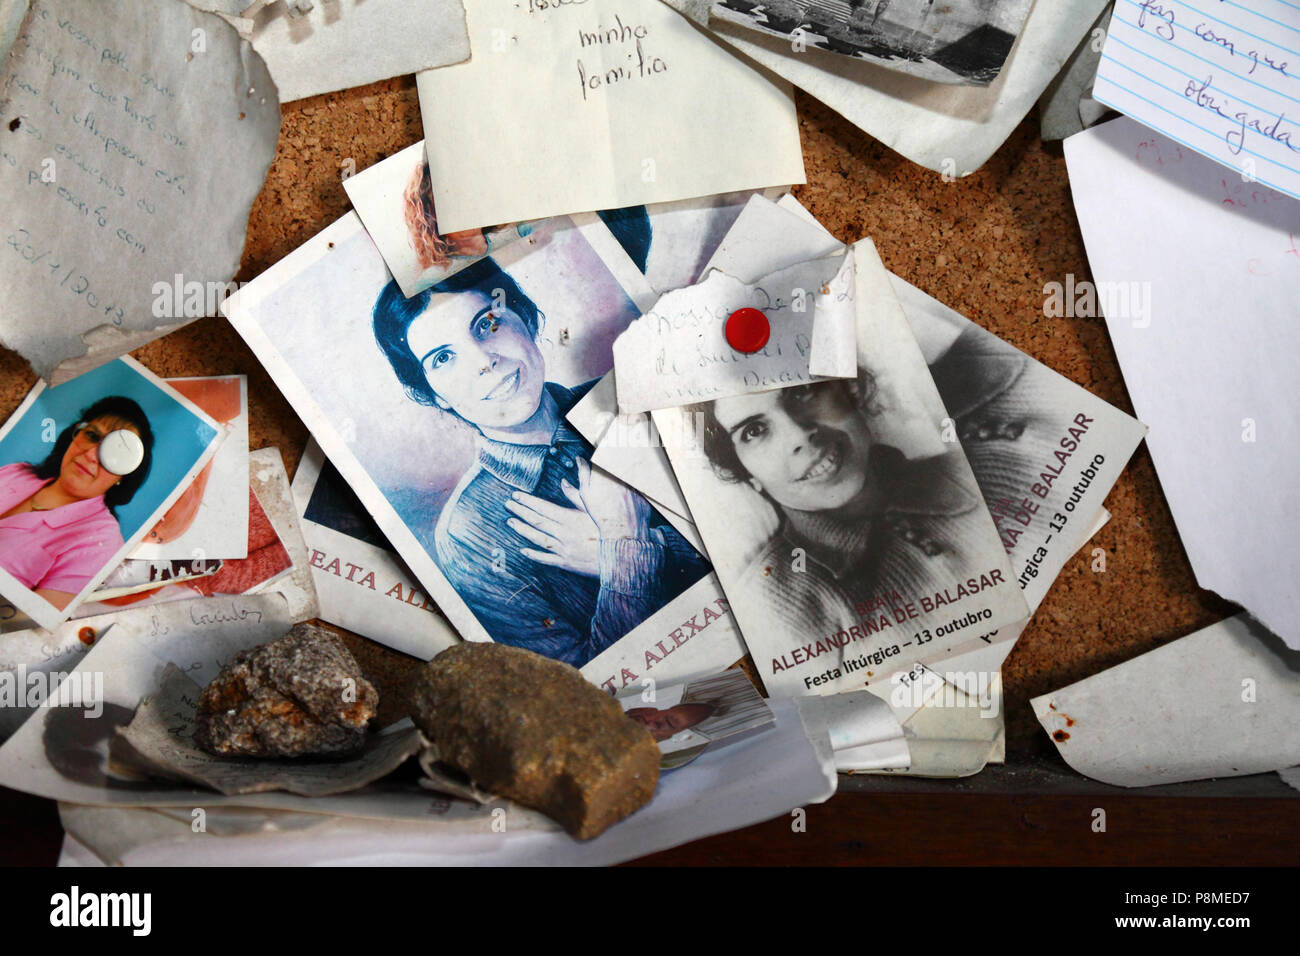 Letters of thanks and photos of devotees in Virgen of Lourdes grotto on Monte do Calvario, Vila Praia de Ancora, Minho Province, northern Portugal - Stock Image